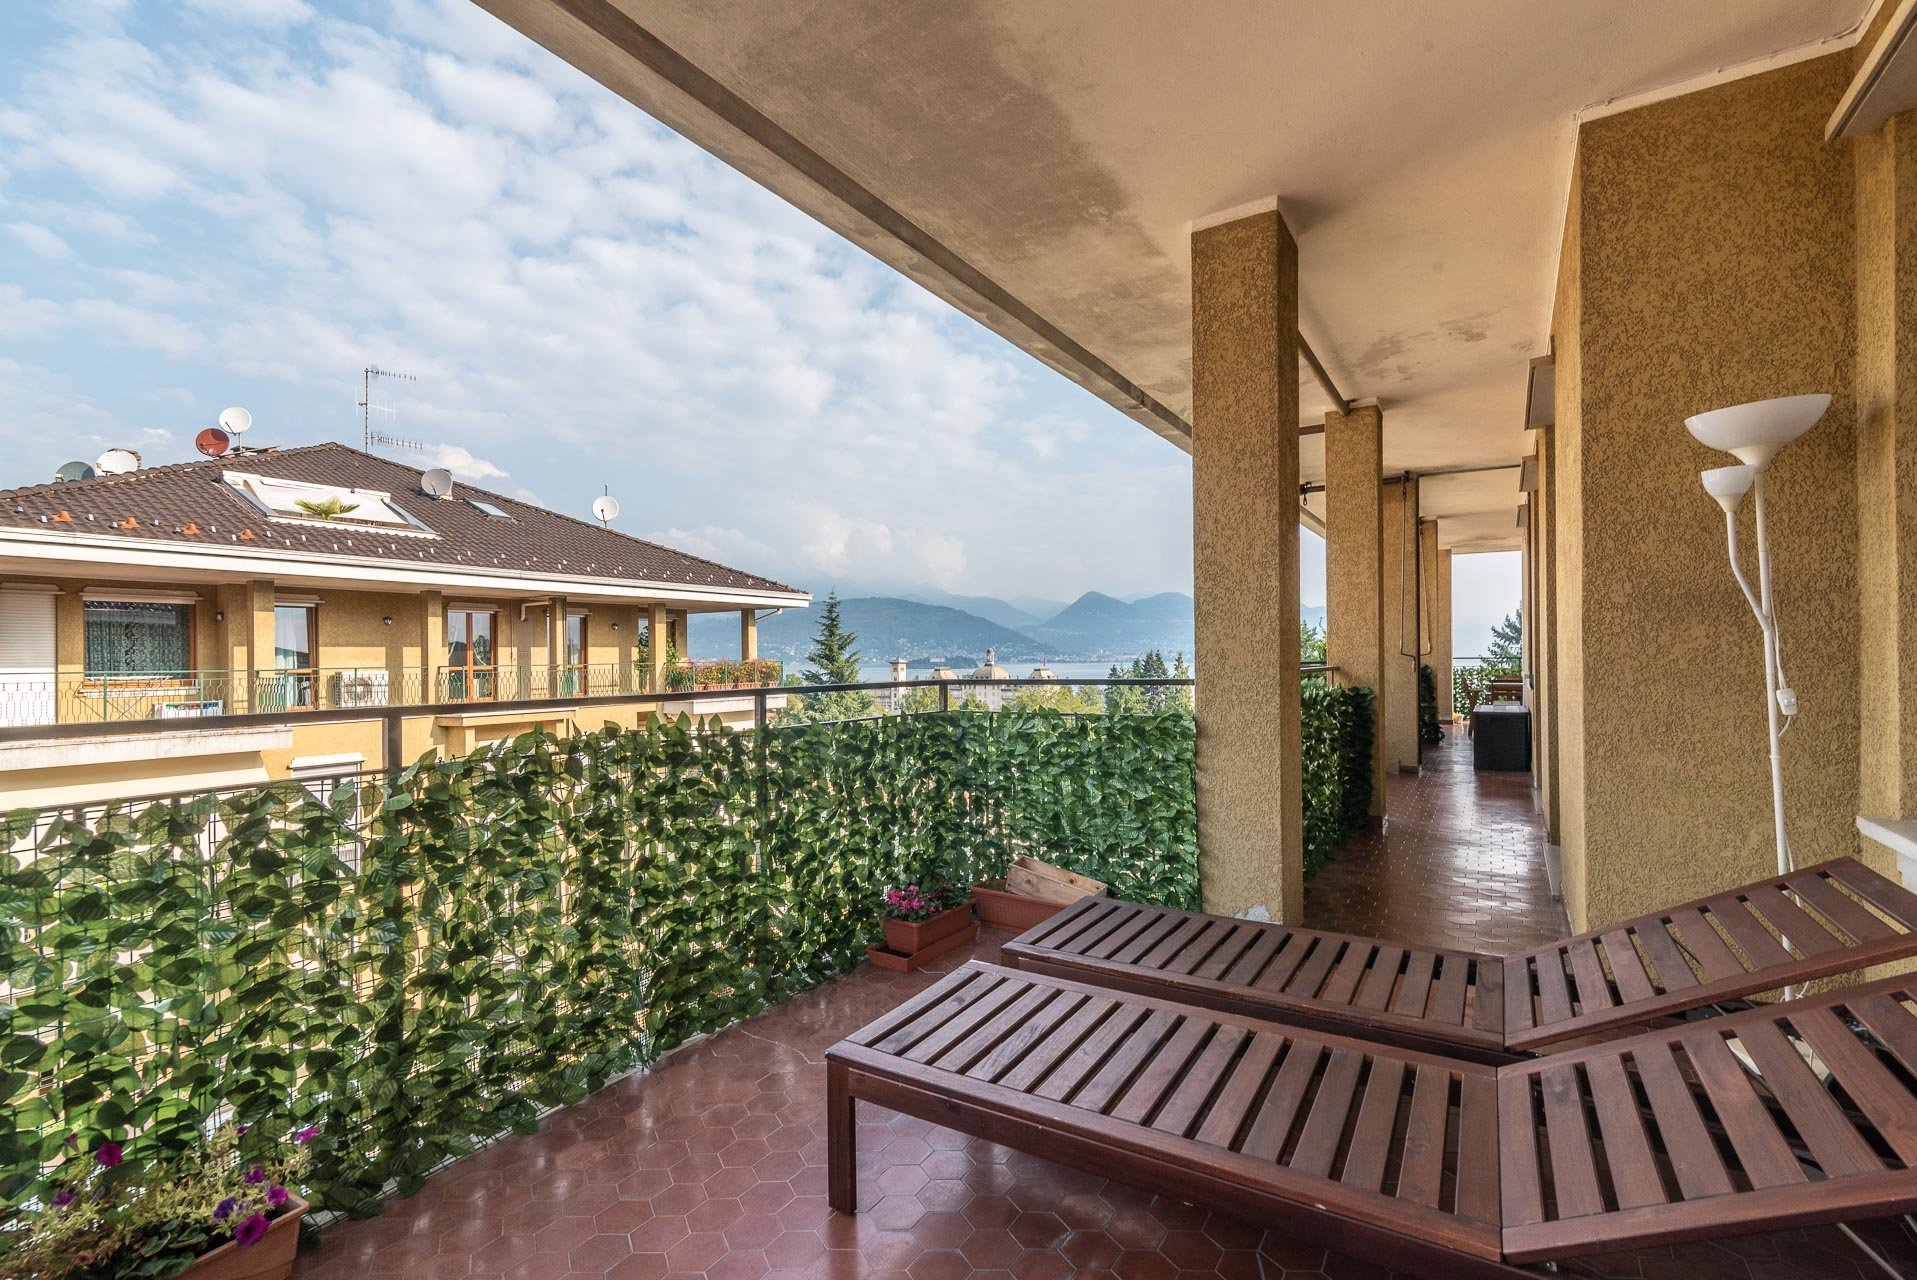 Apartment for rent in Stresa - wooden sunbeds